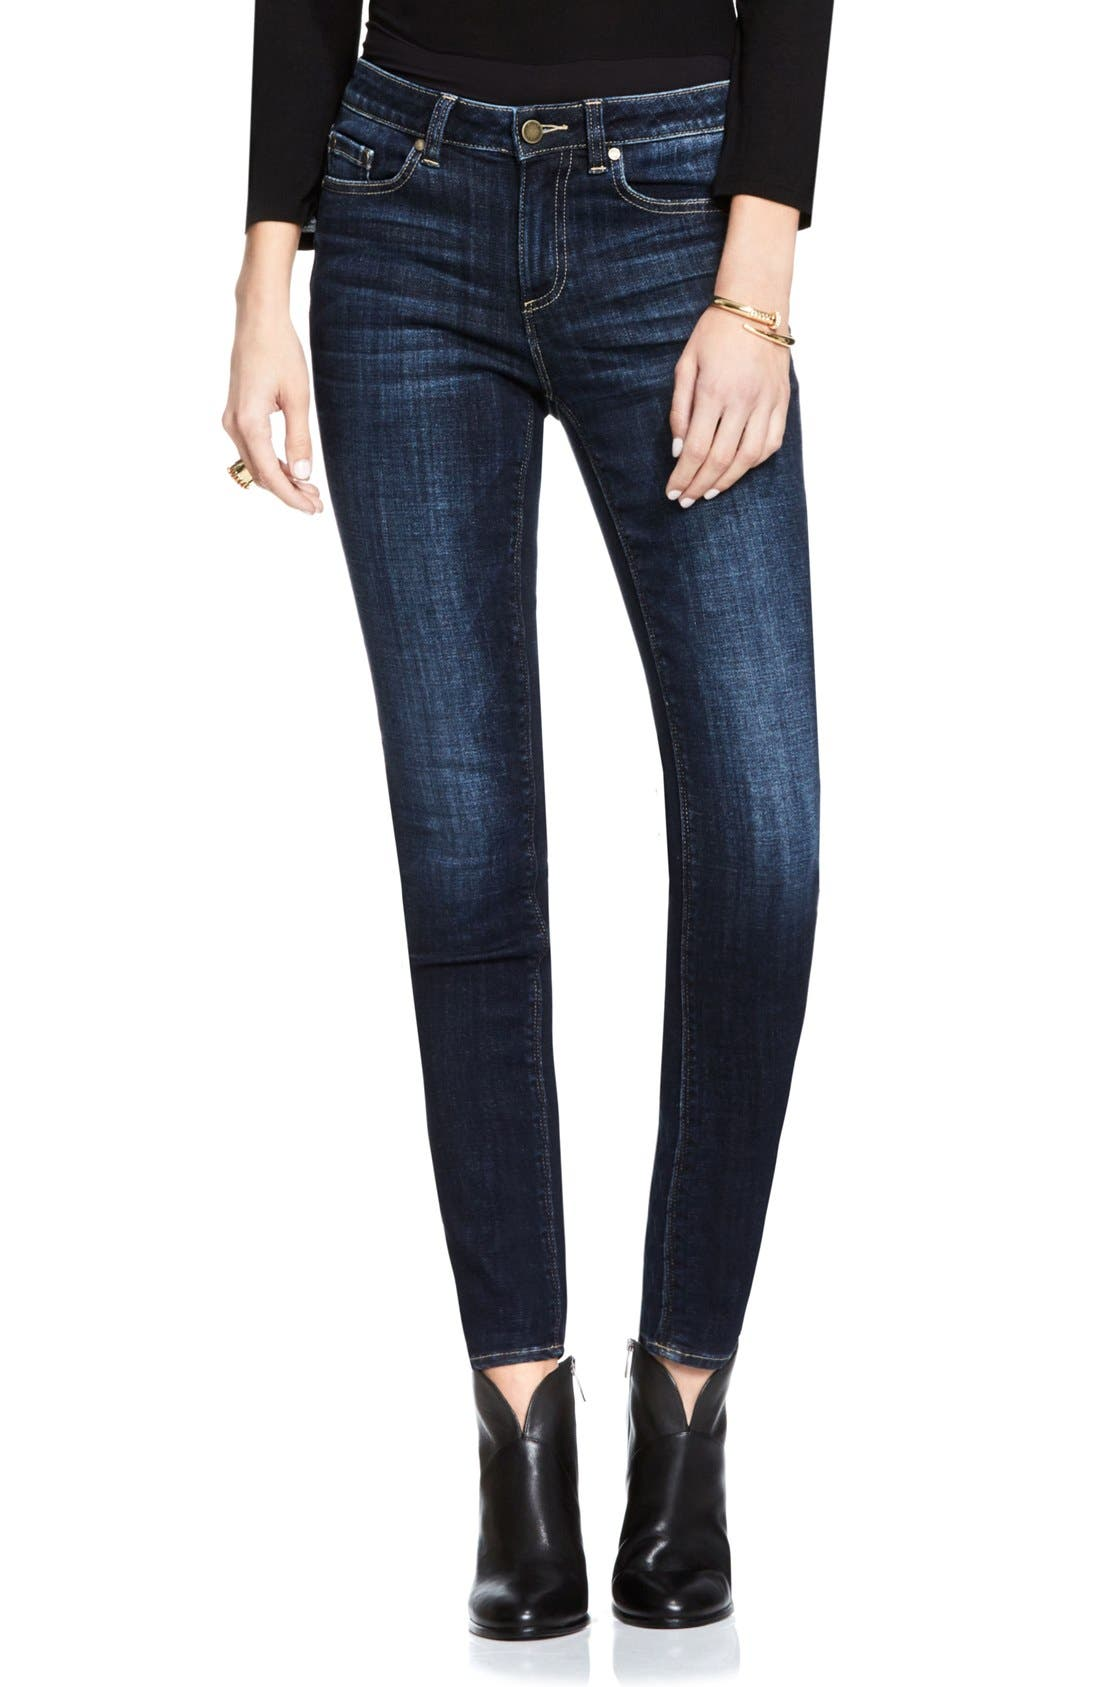 Vince Camuto Stretch Skinny Jeans (Regular & Petite)